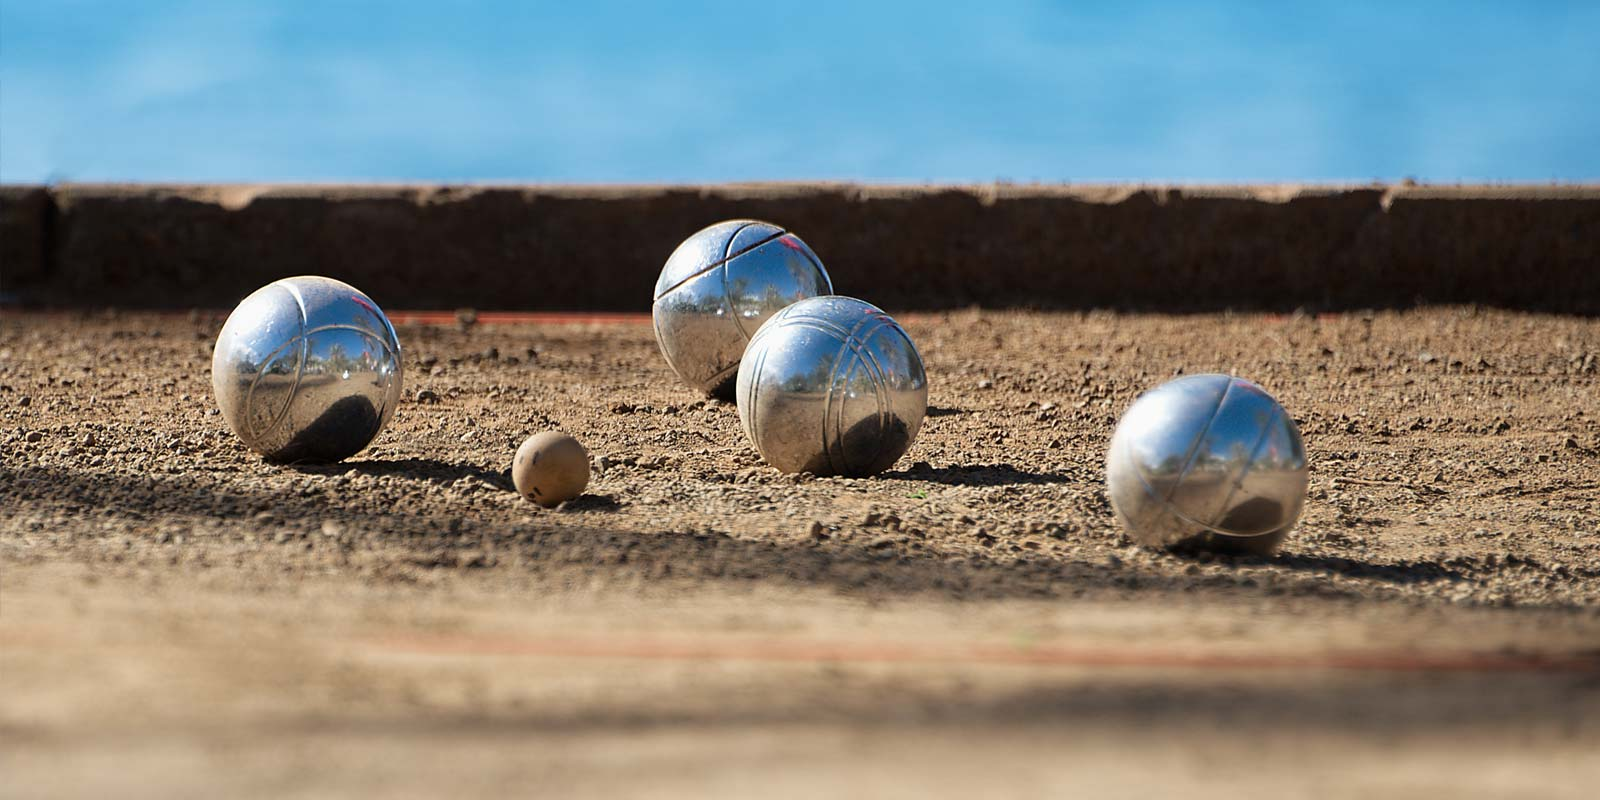 Petanque ball on the boules pitch of Le Bois Tordu campsite in Vendée